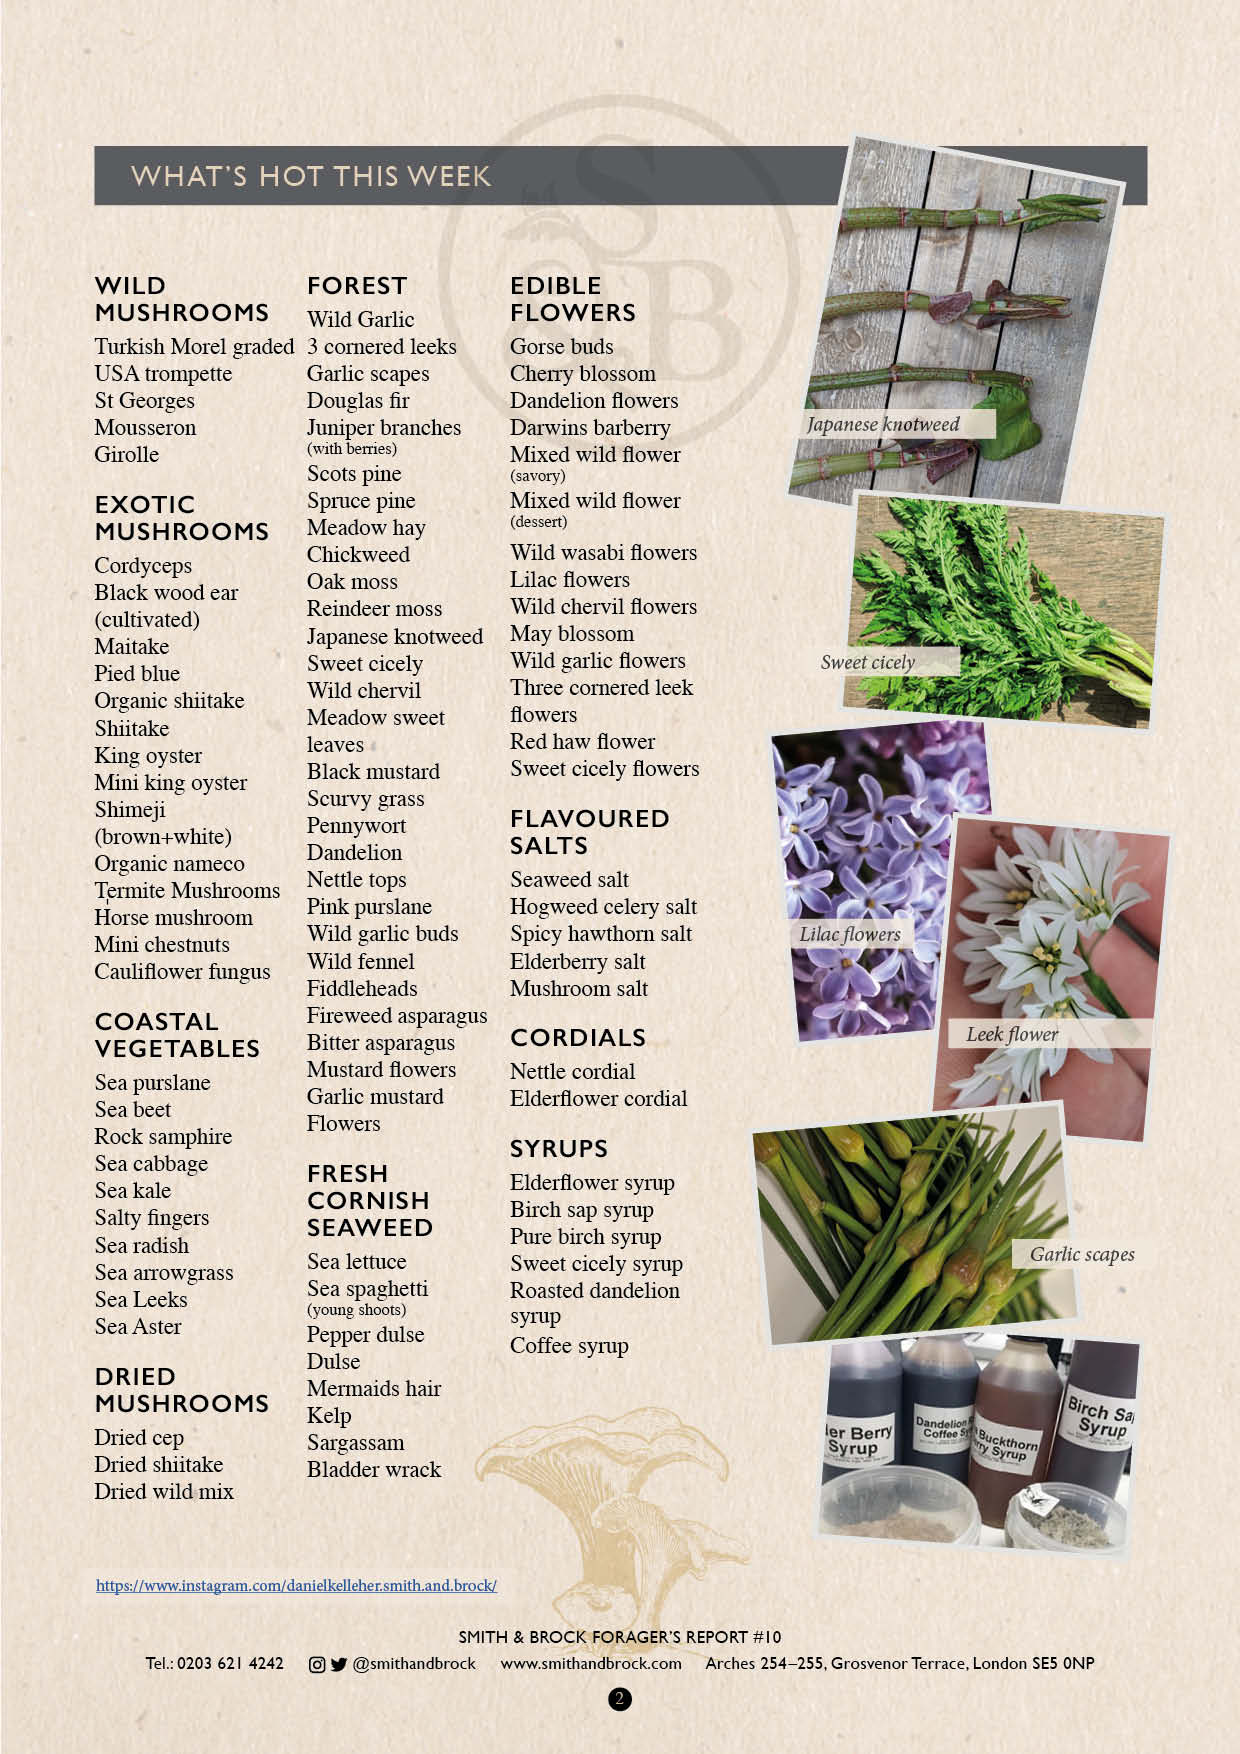 Smith&Brock Foraged Products Report 27 May 2019 10 2